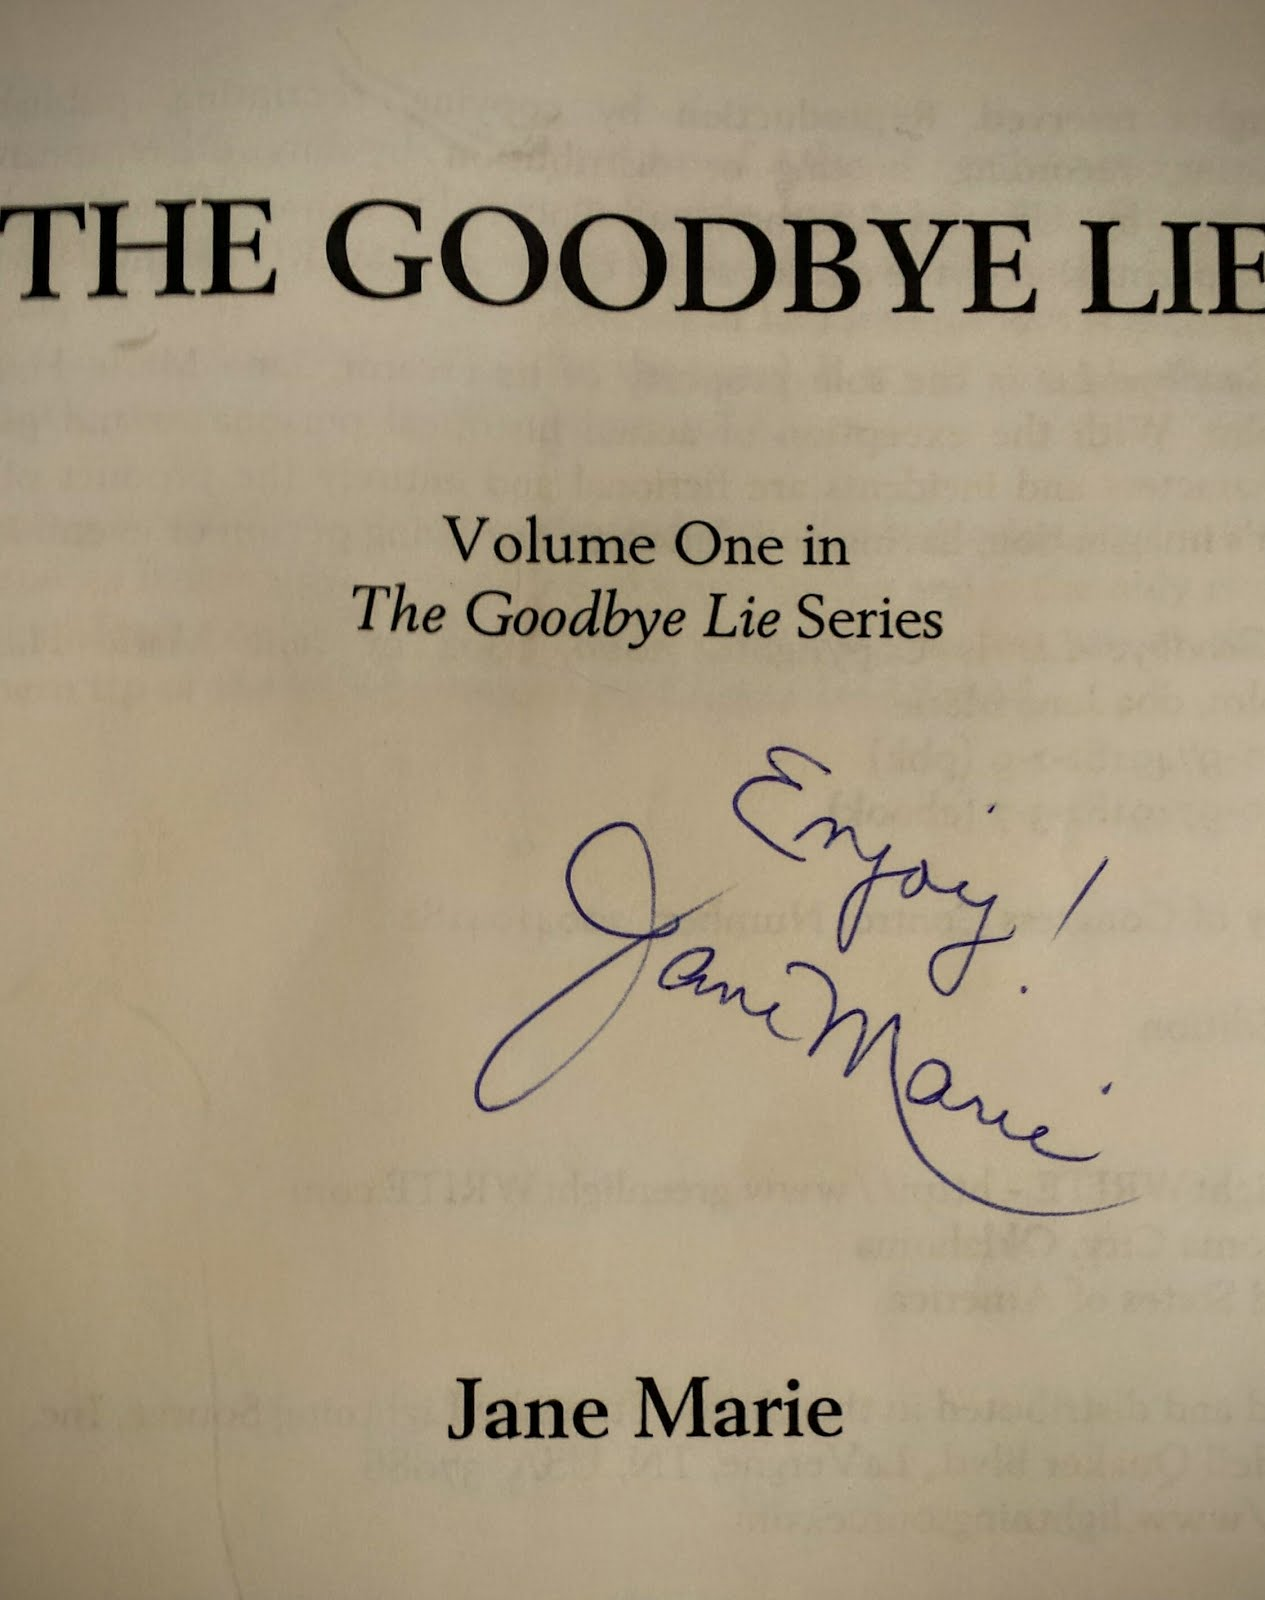 Click on the Title Page below to Read the Opening Pages of The Goodbye Lie